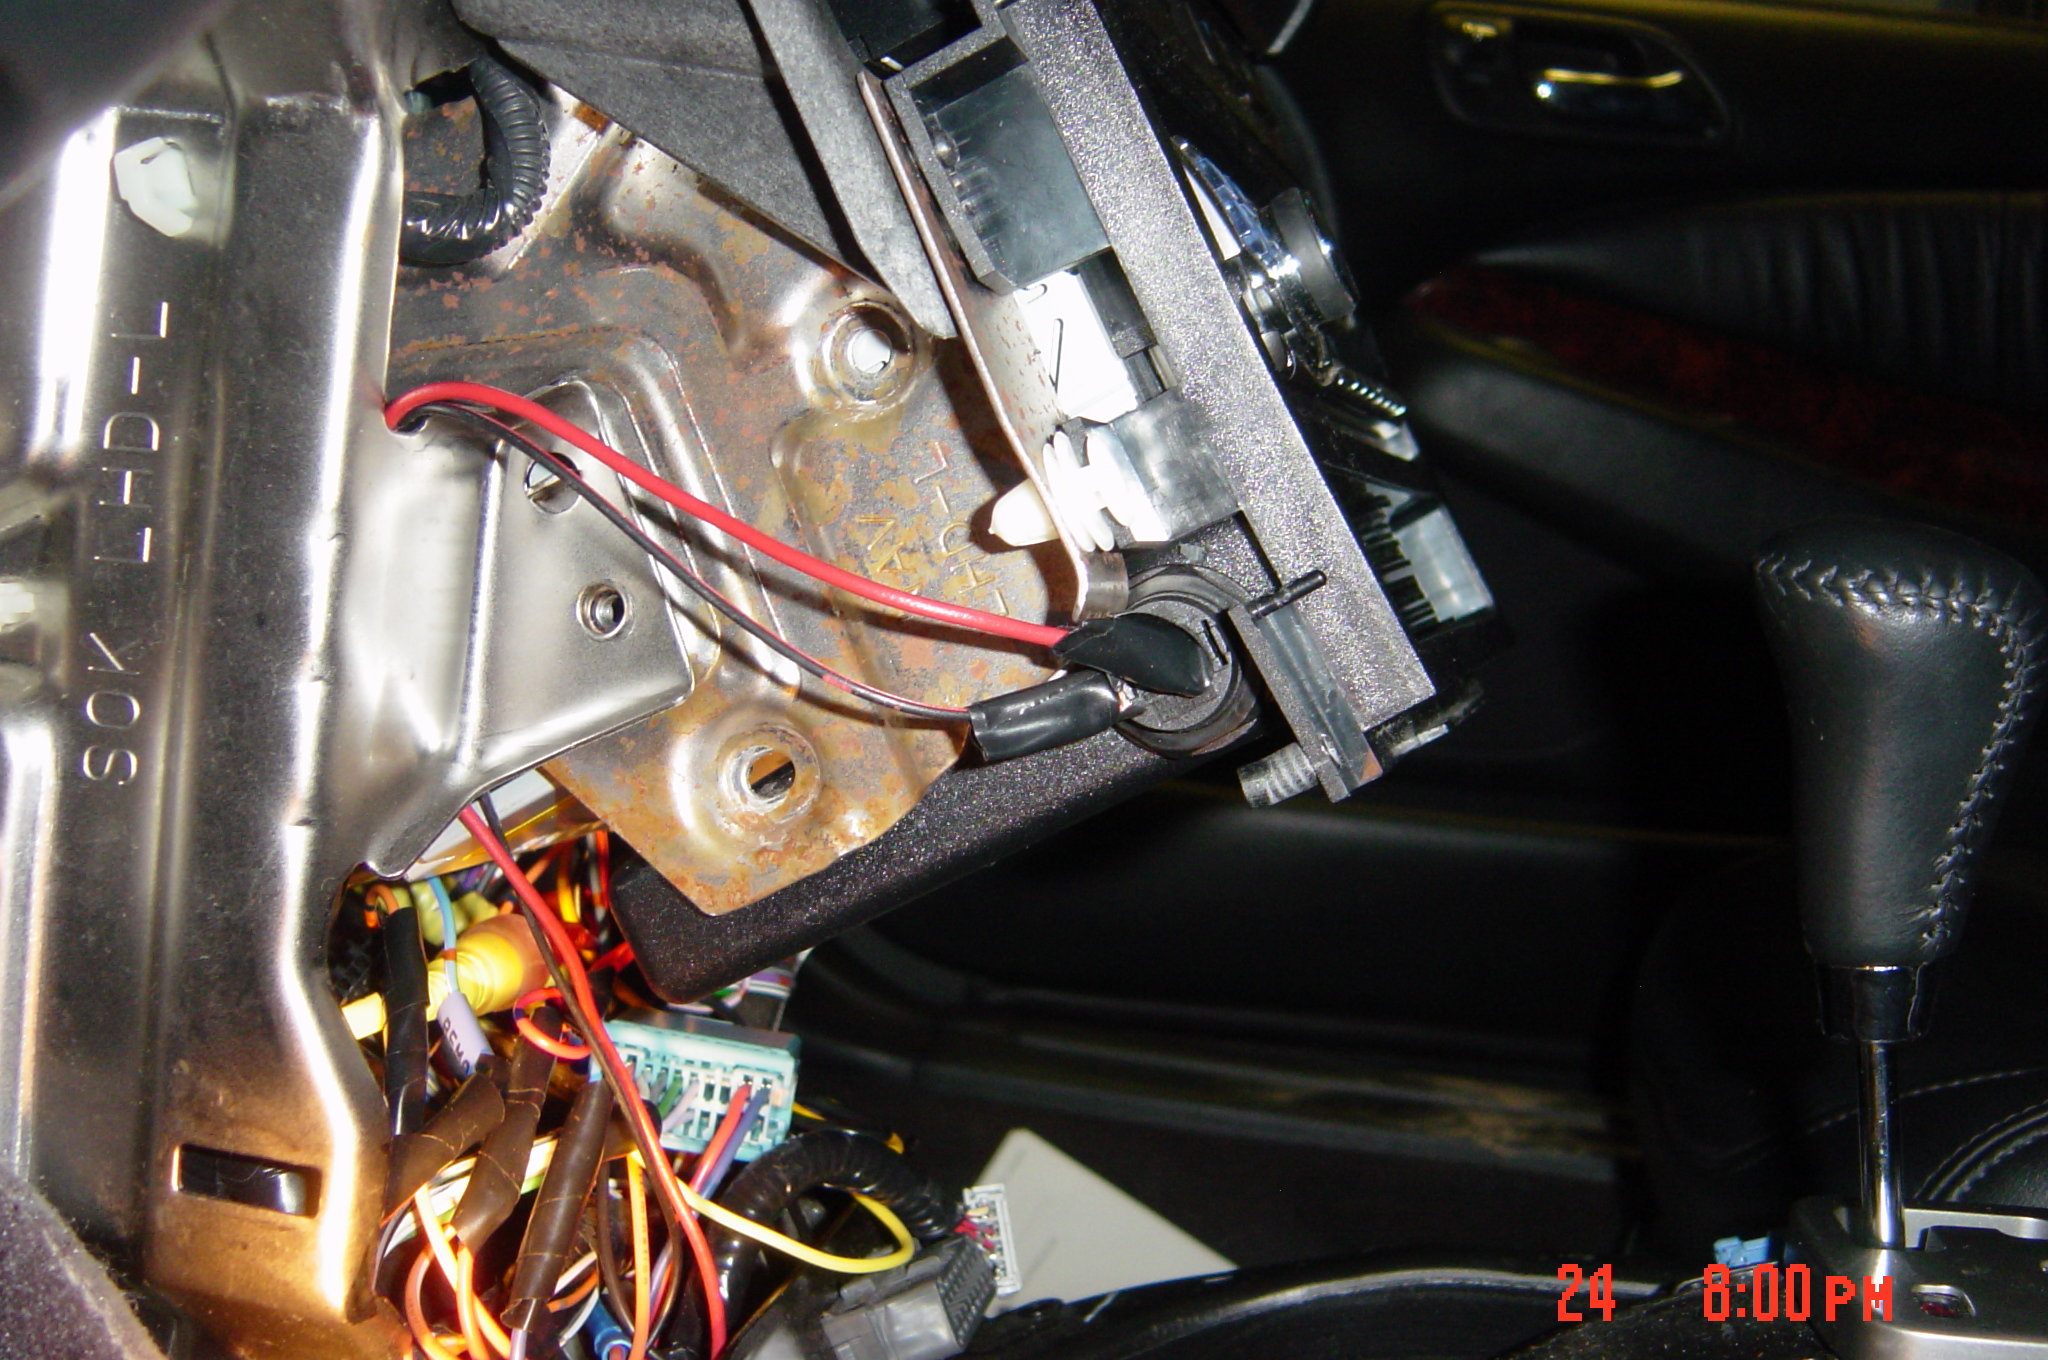 2002 Acura Tl Com Wiring Wiringsc Htm Diagram For Electric Guitar The Other Wire Is Connected To Parking Brake Ground I Didnt Have A Solder Gun So Just Twisted Wires And Wrapped It With Tape